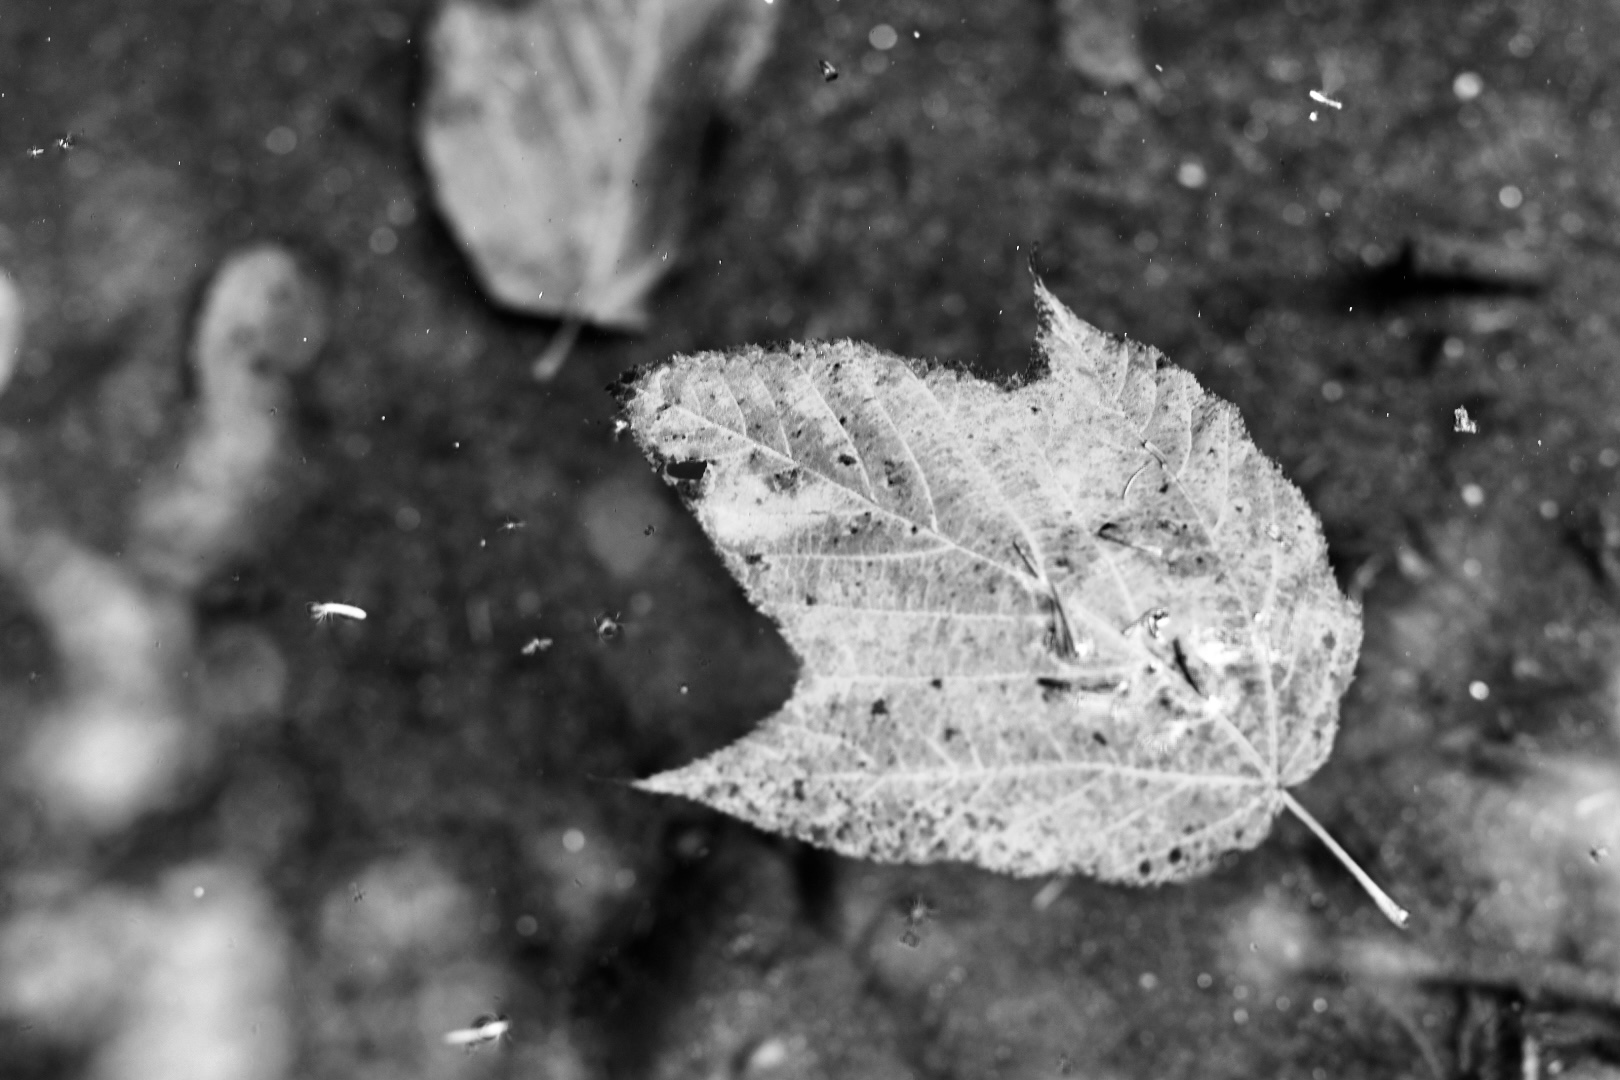 Black and white macro image of a leaf floating in water. 2021. Taryn Okesson. Digital Photography. White Mountain National Forest, New Hampshire.